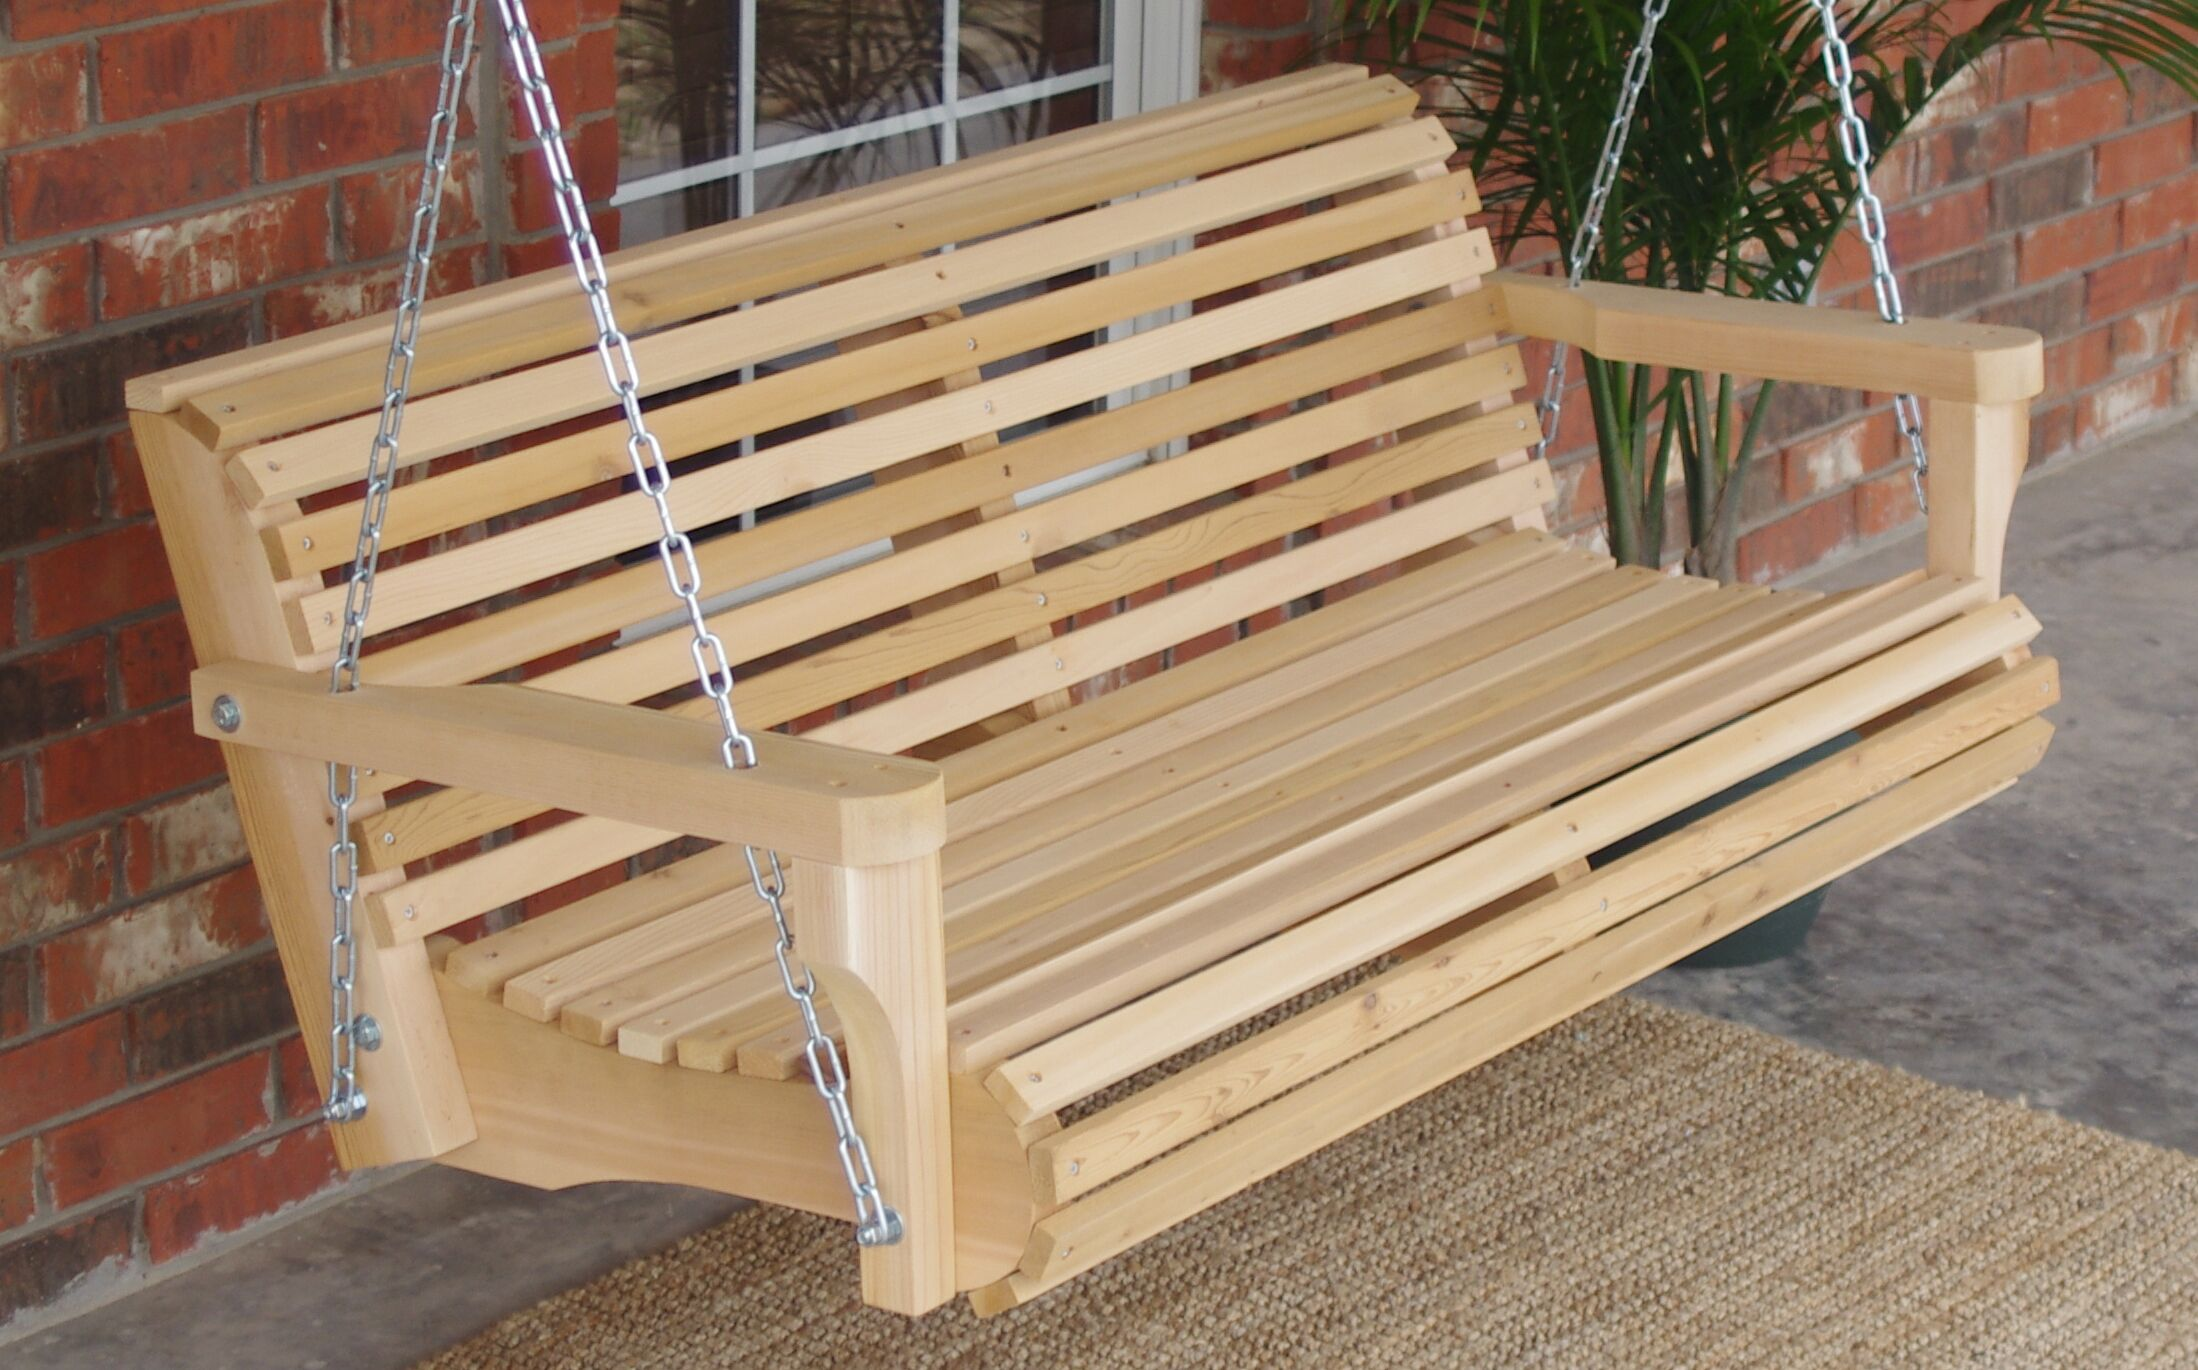 Himes Contoured Classic Cedar Porch Swing Finish: Natural/Regular, Size: 22